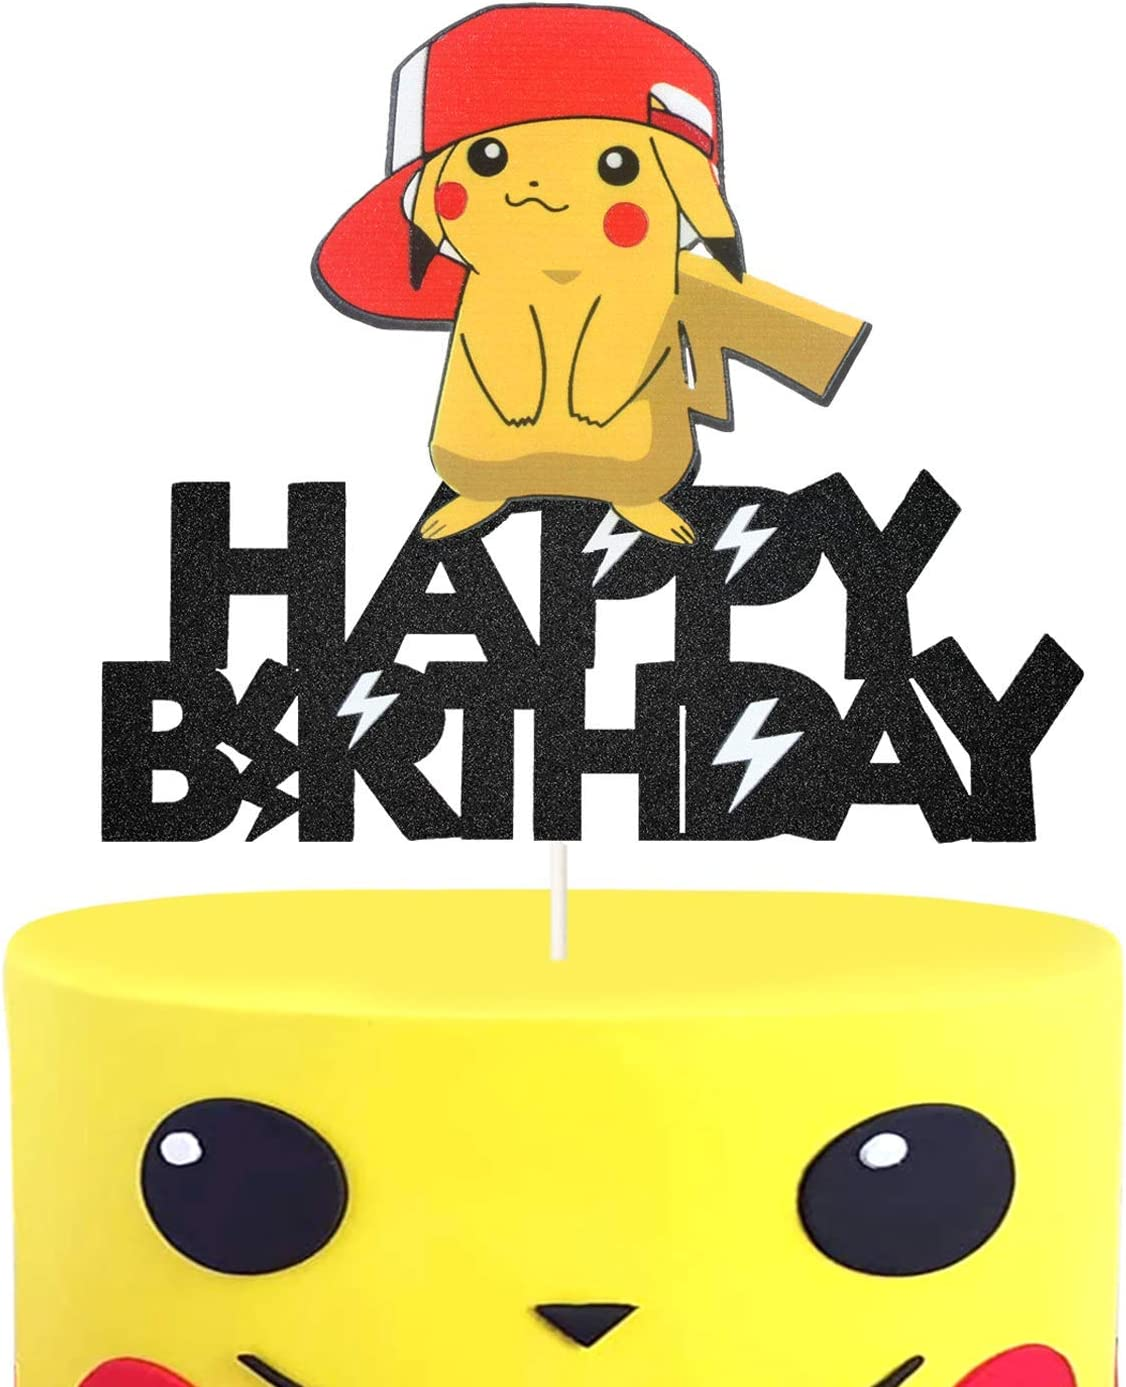 Pikachu Happy Birthday Cake Topper Cute Pokemon Inspired Cake Decor, Trainers Themed Party Decoration, Glitter Kid birthday Party Supplies